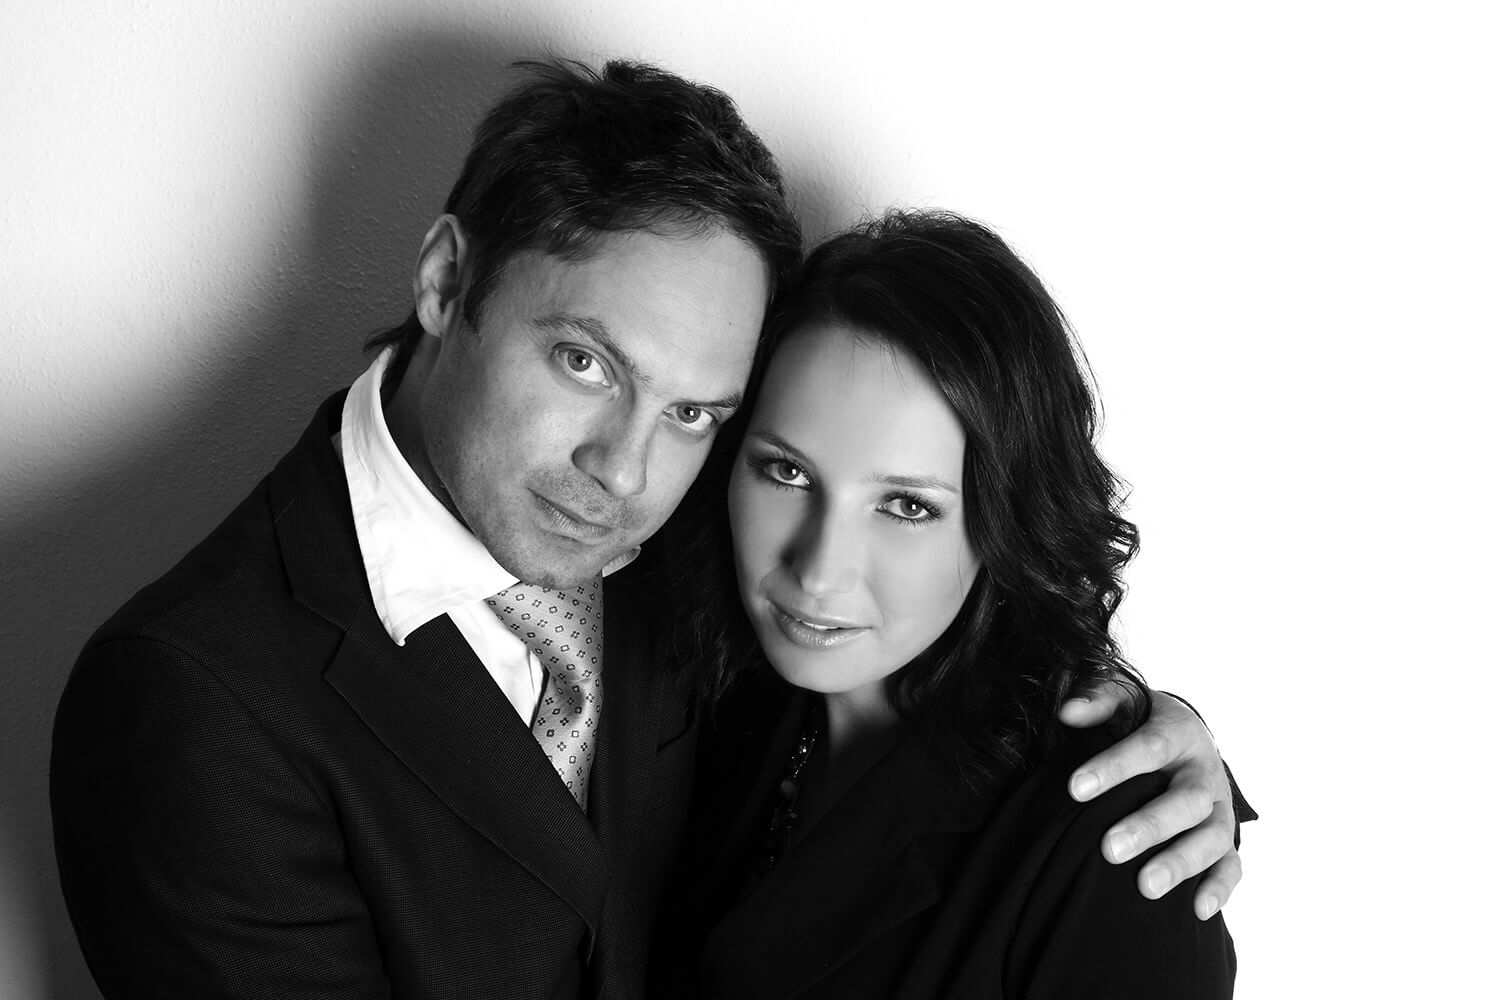 black and white couple photo of a woman and a man on a light background, close-up on faces